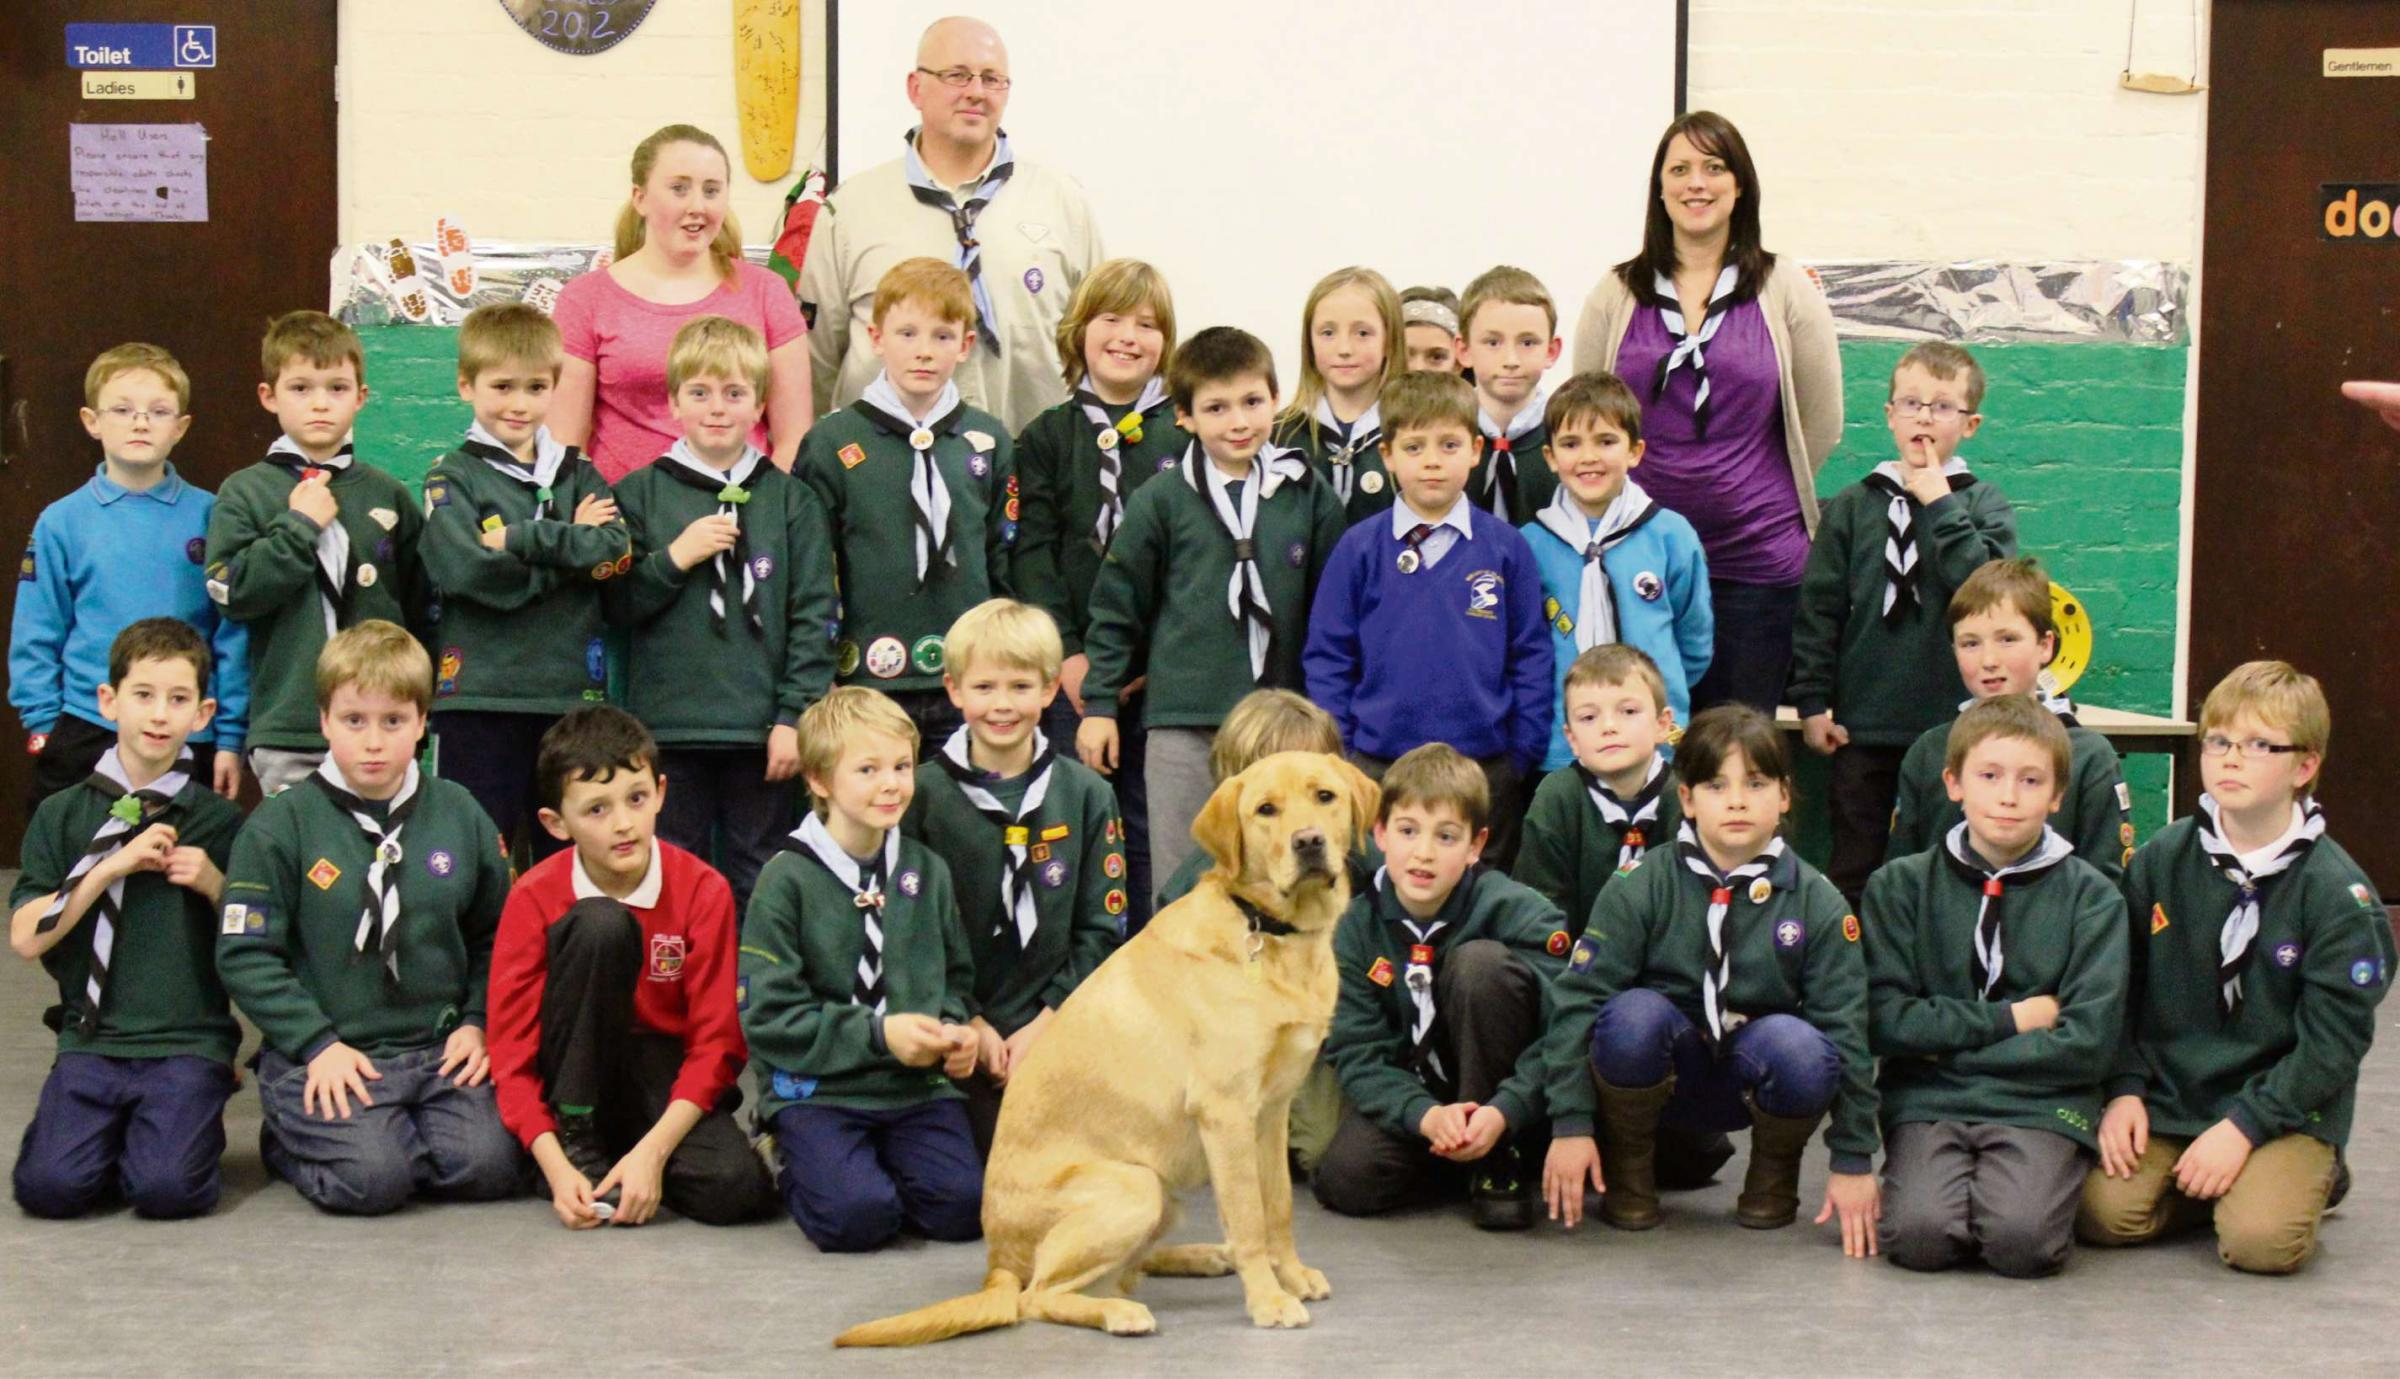 Guide dog puppy Sparkey meets the 1st Panteg Cub Scouts at New In